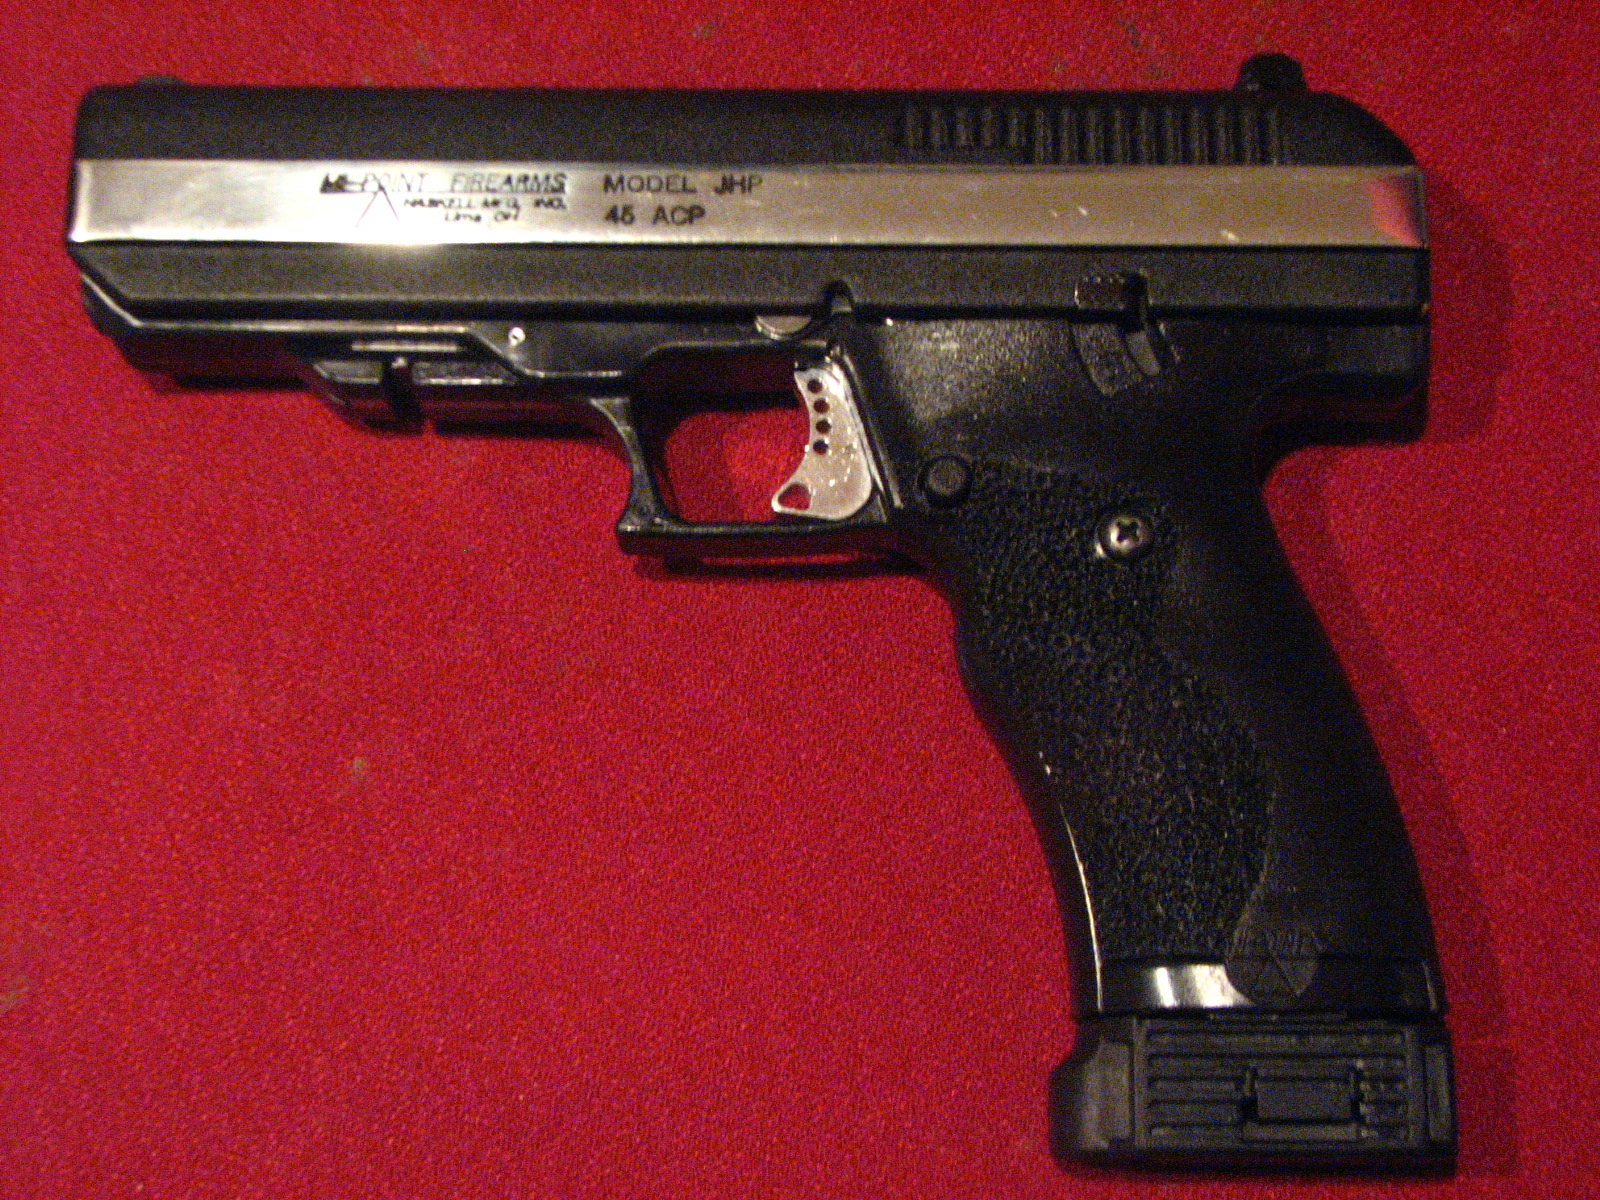 JHP45 | Hi-Point Firearms Forum - The Community for Hi-Point